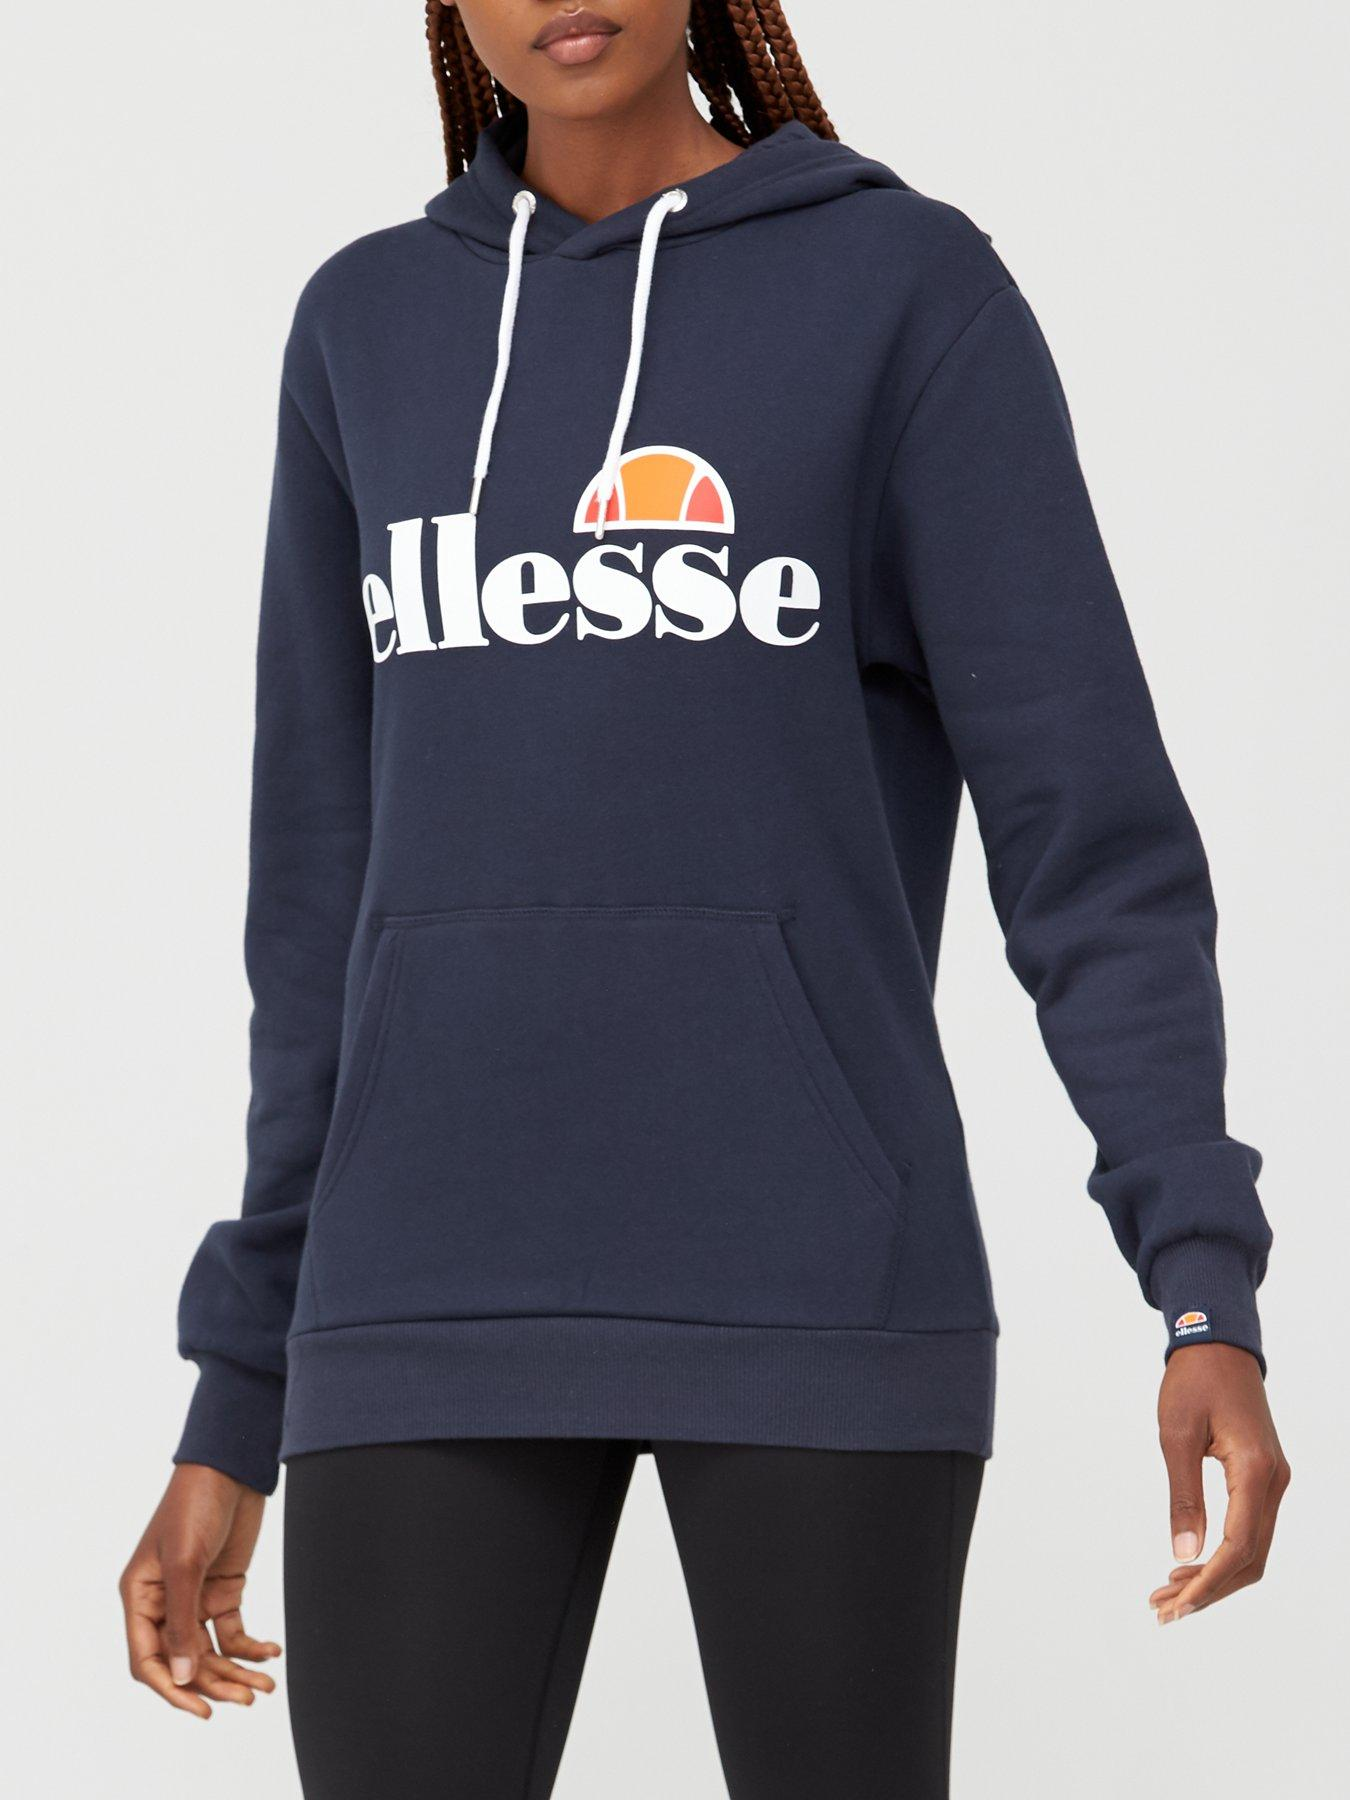 ellesse sweater womens review